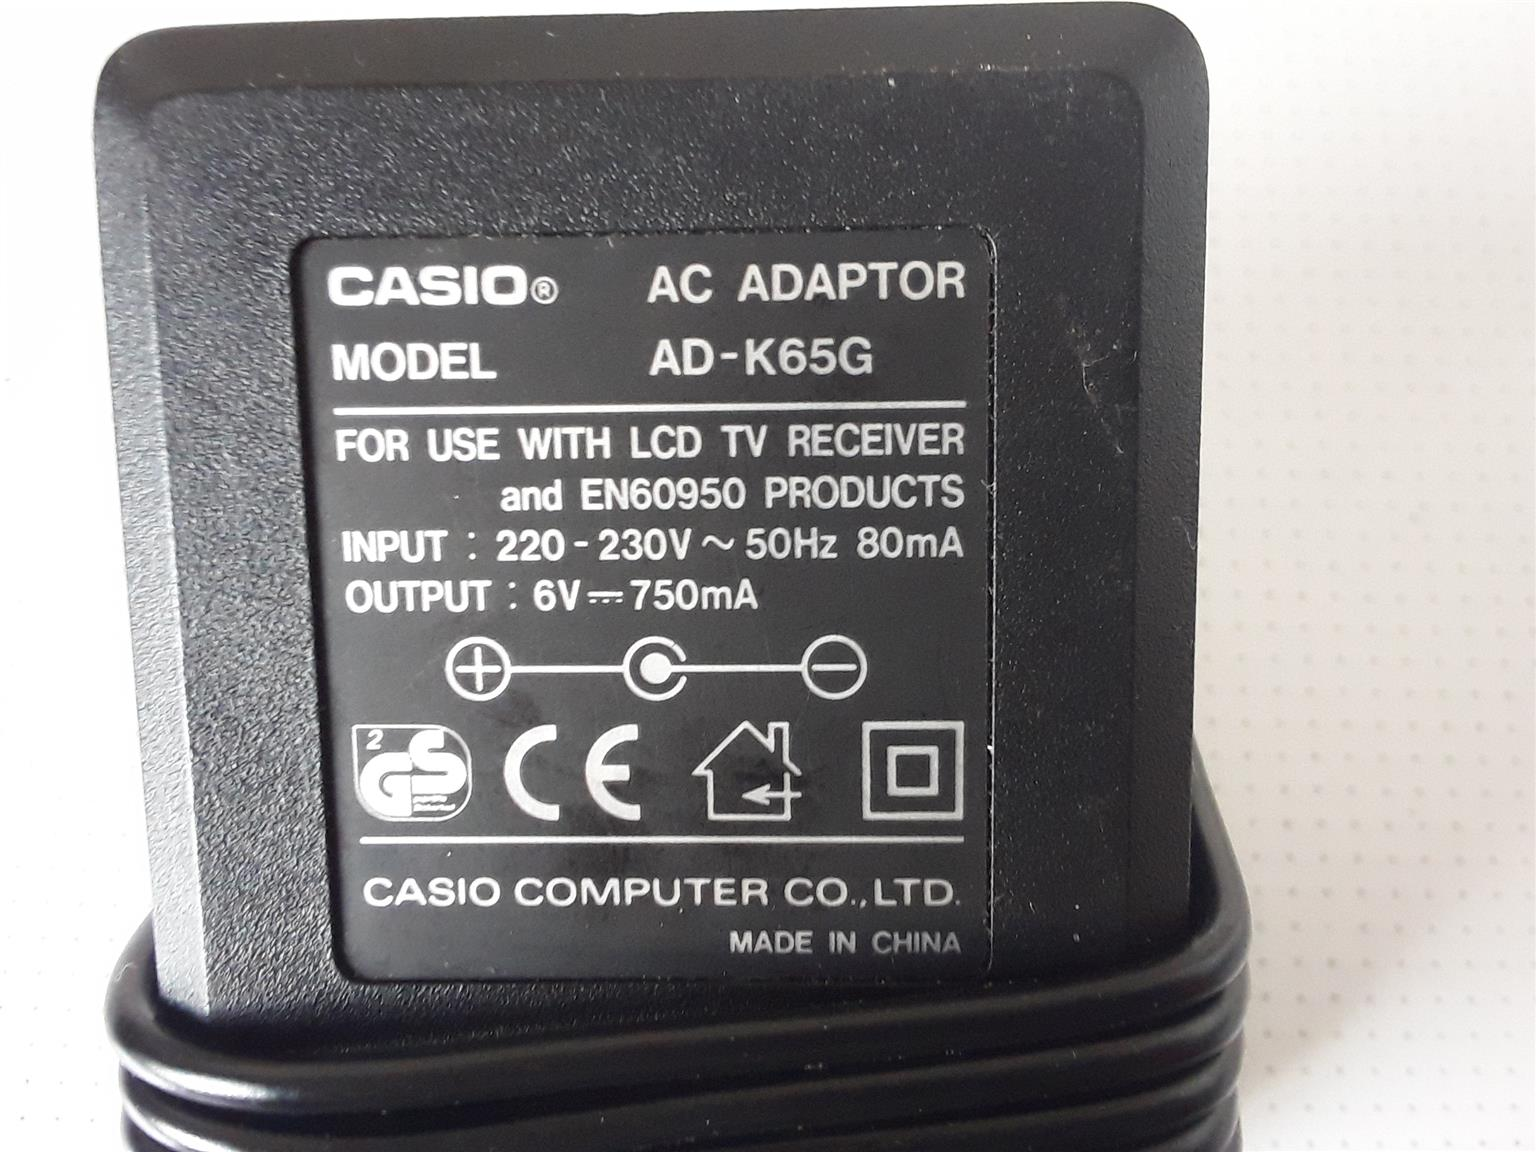 CASIO AC Adaptor Model AD-K65G for use with LCD TV Receiver and EN60950 Products